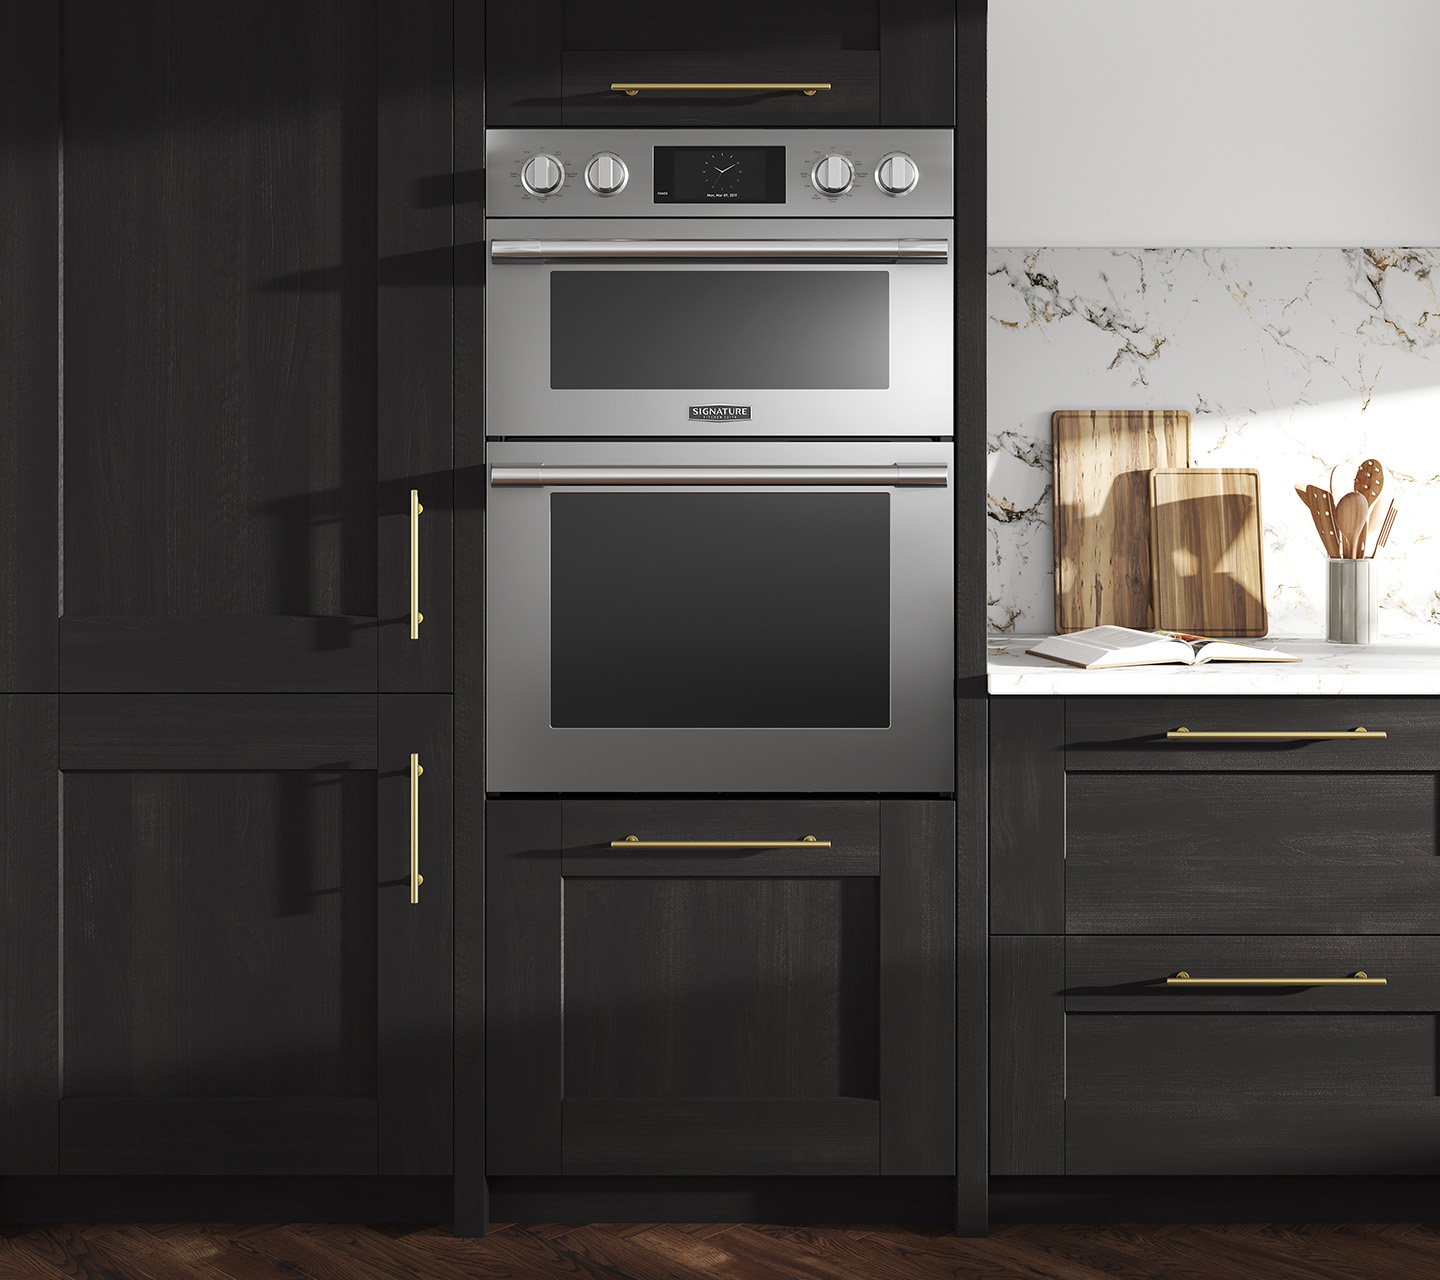 SKS 30-inch Combi Wall Oven